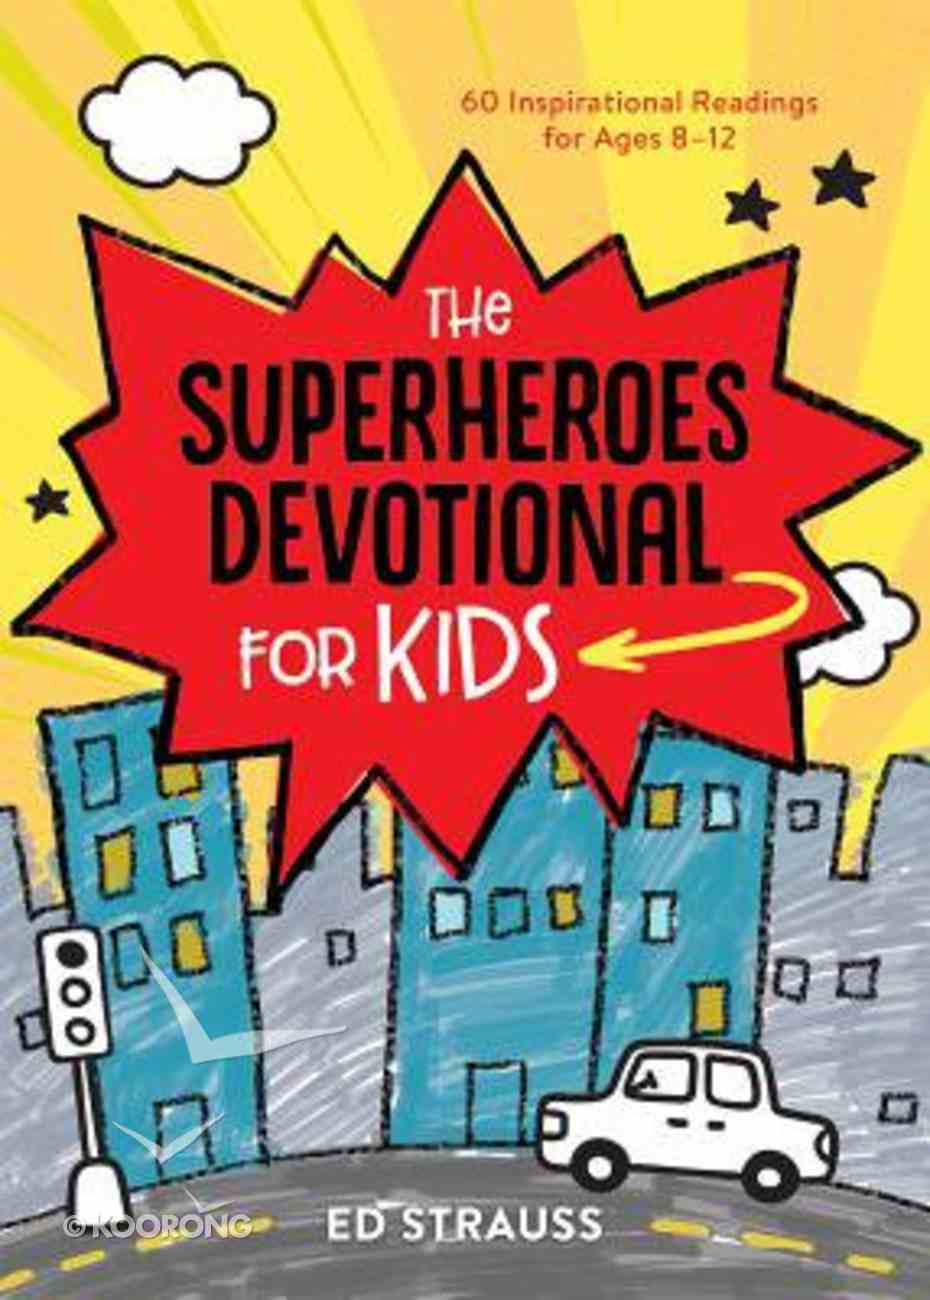 The Superheroes Devotional For Kids: 60 Inspirational Readings For Ages 8-12 Paperback